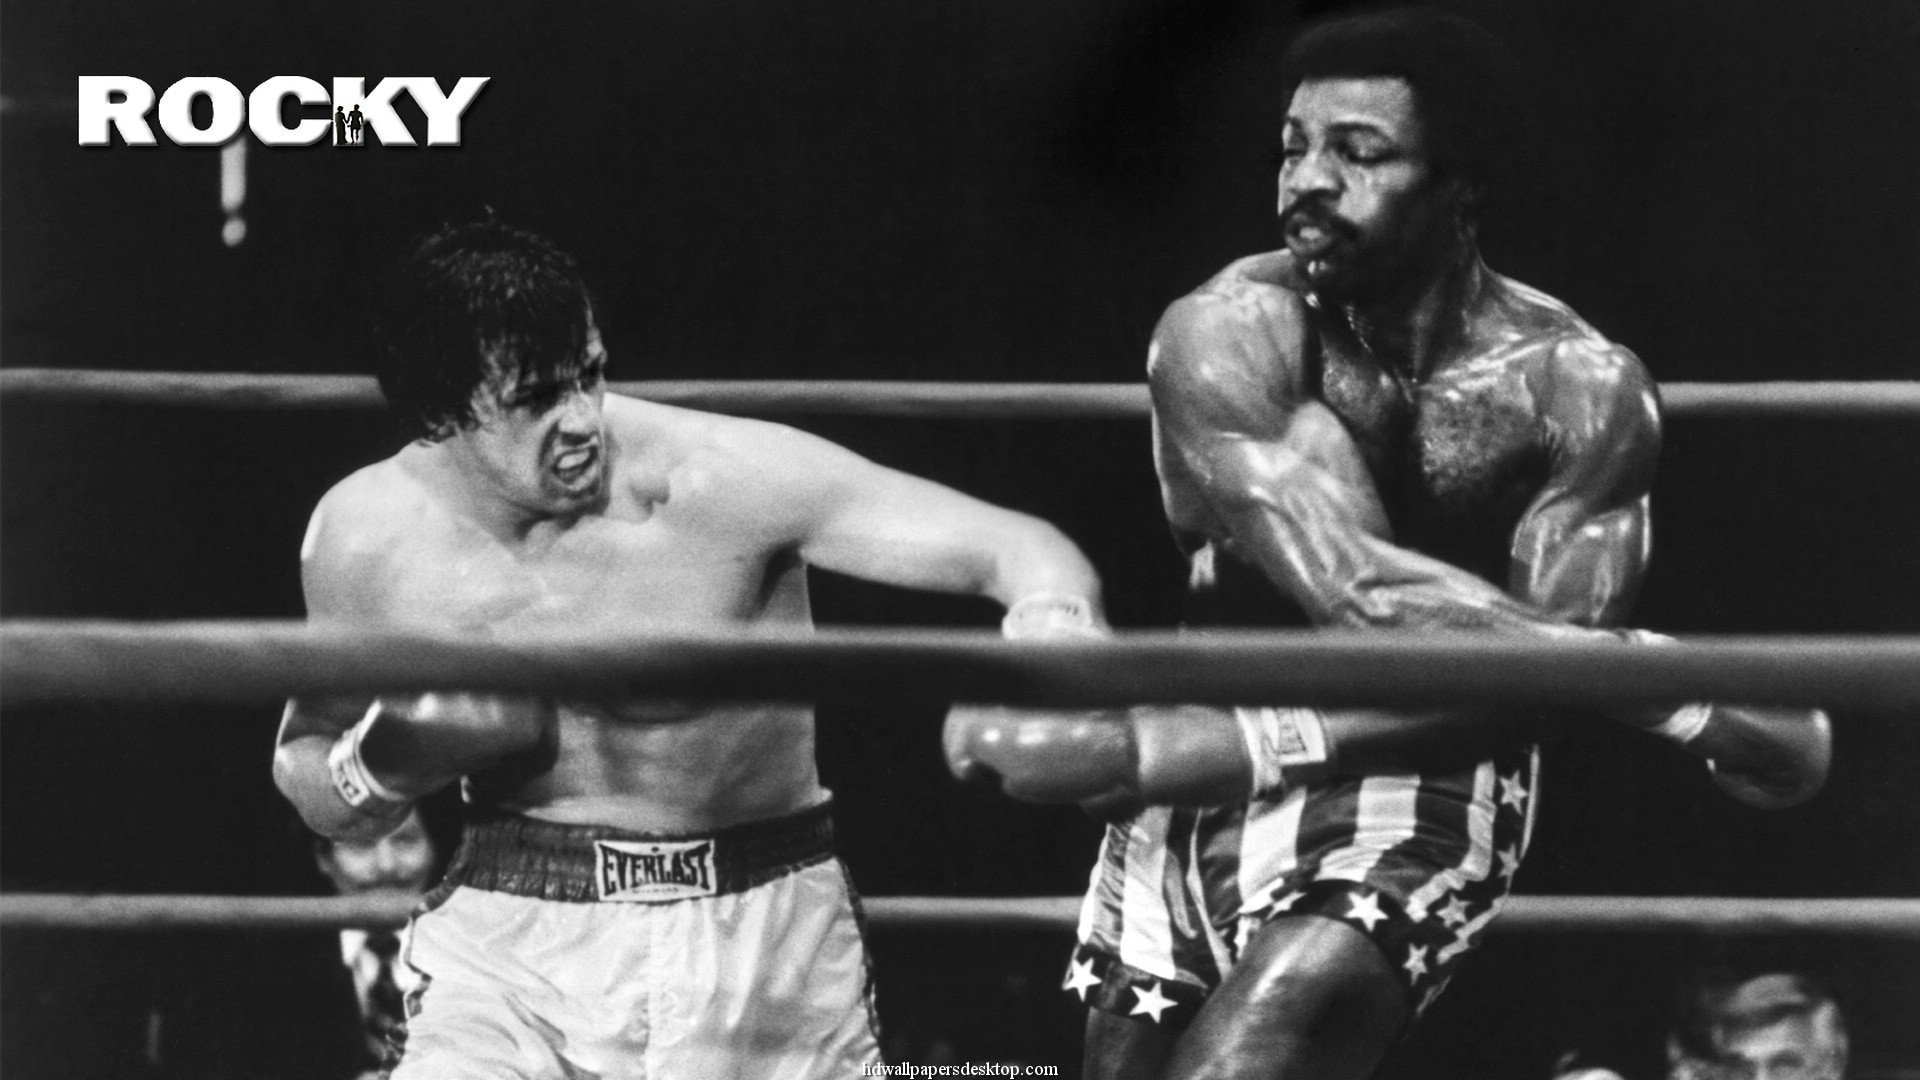 rocky wallpaper rocky ii wallpaper rocky iii wallpaper Search Pictures 1920x1080